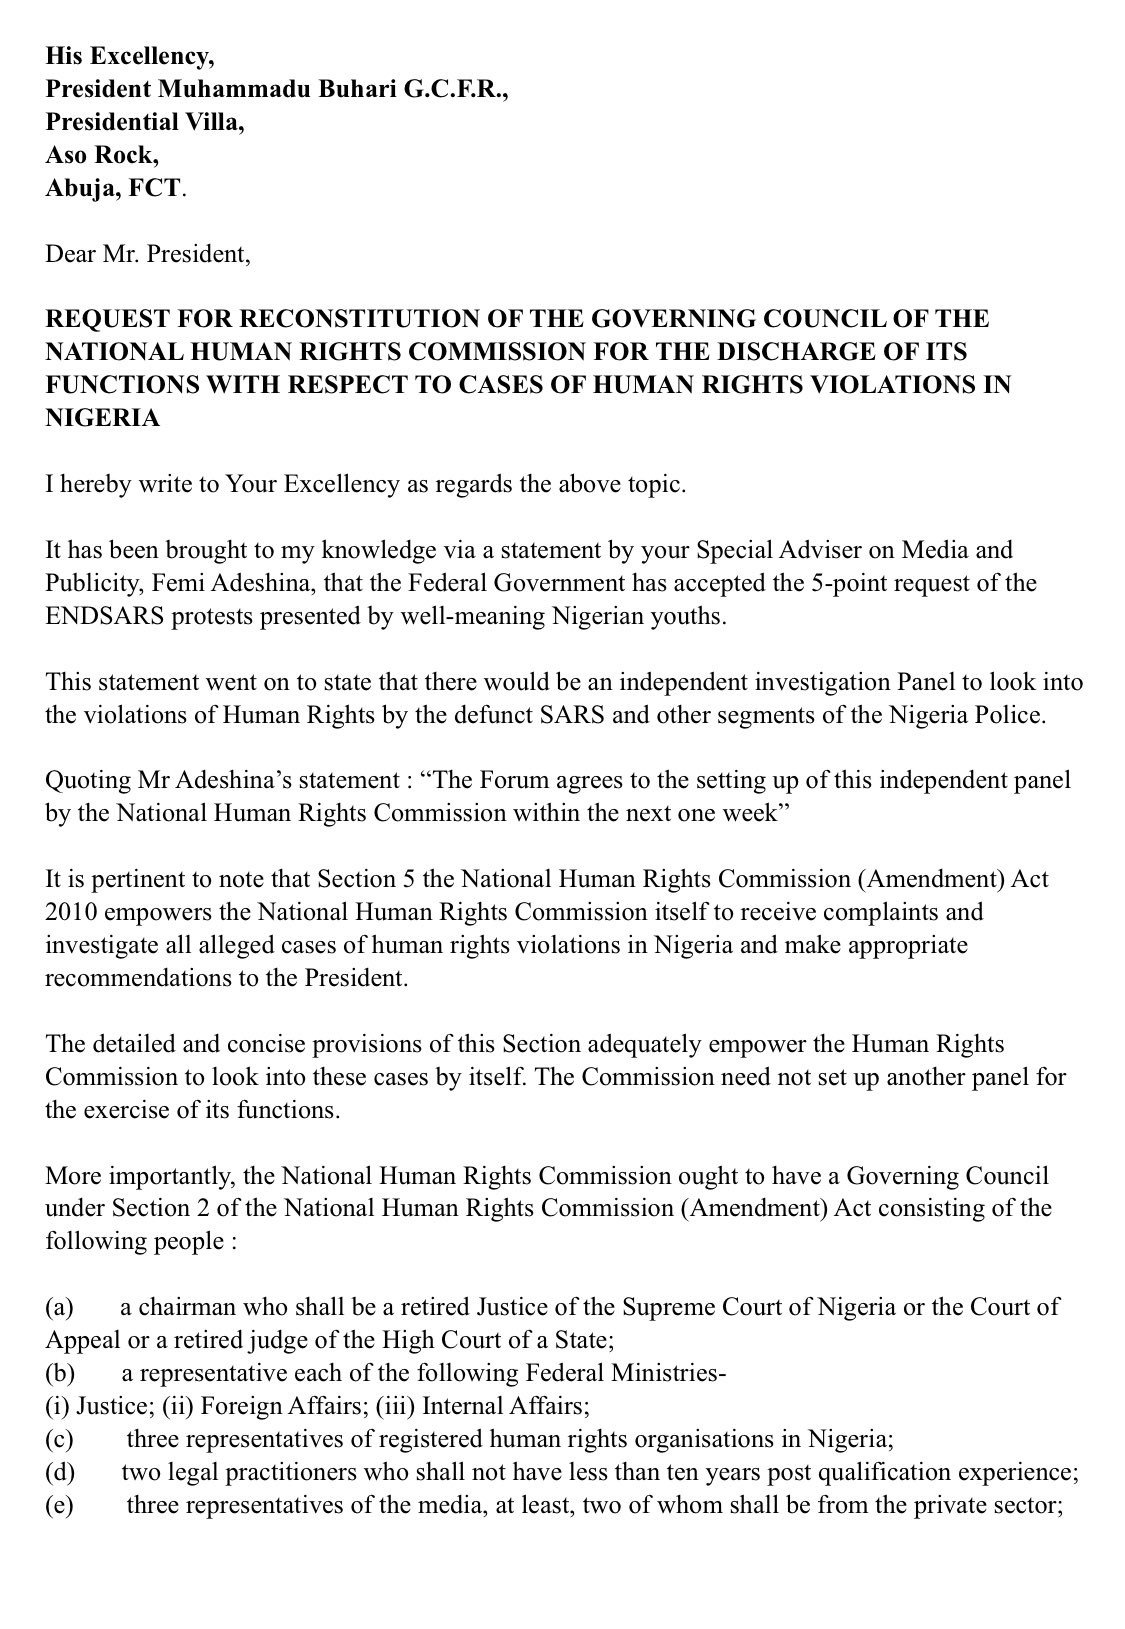 Rapper, Falz Writes Open Letter To President Buhari, Seeks Reconstitution Of The National Human Rights Commissions Board